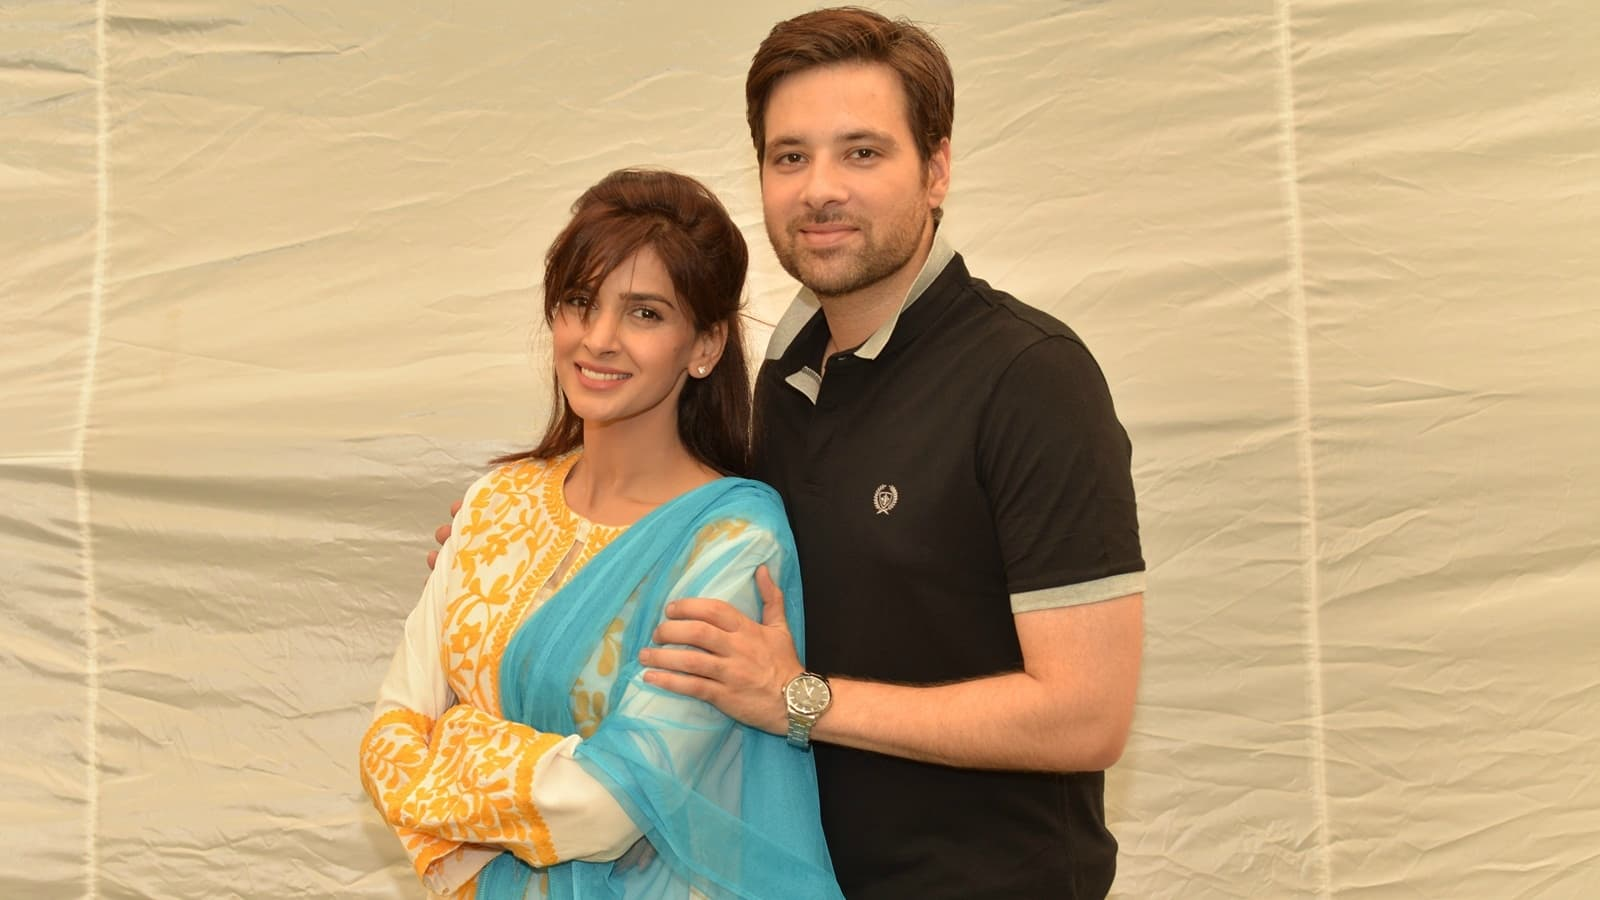 The happily wedded couple of Sangat - Ashy and Adnan - see their life turn upside down – Publicity photo